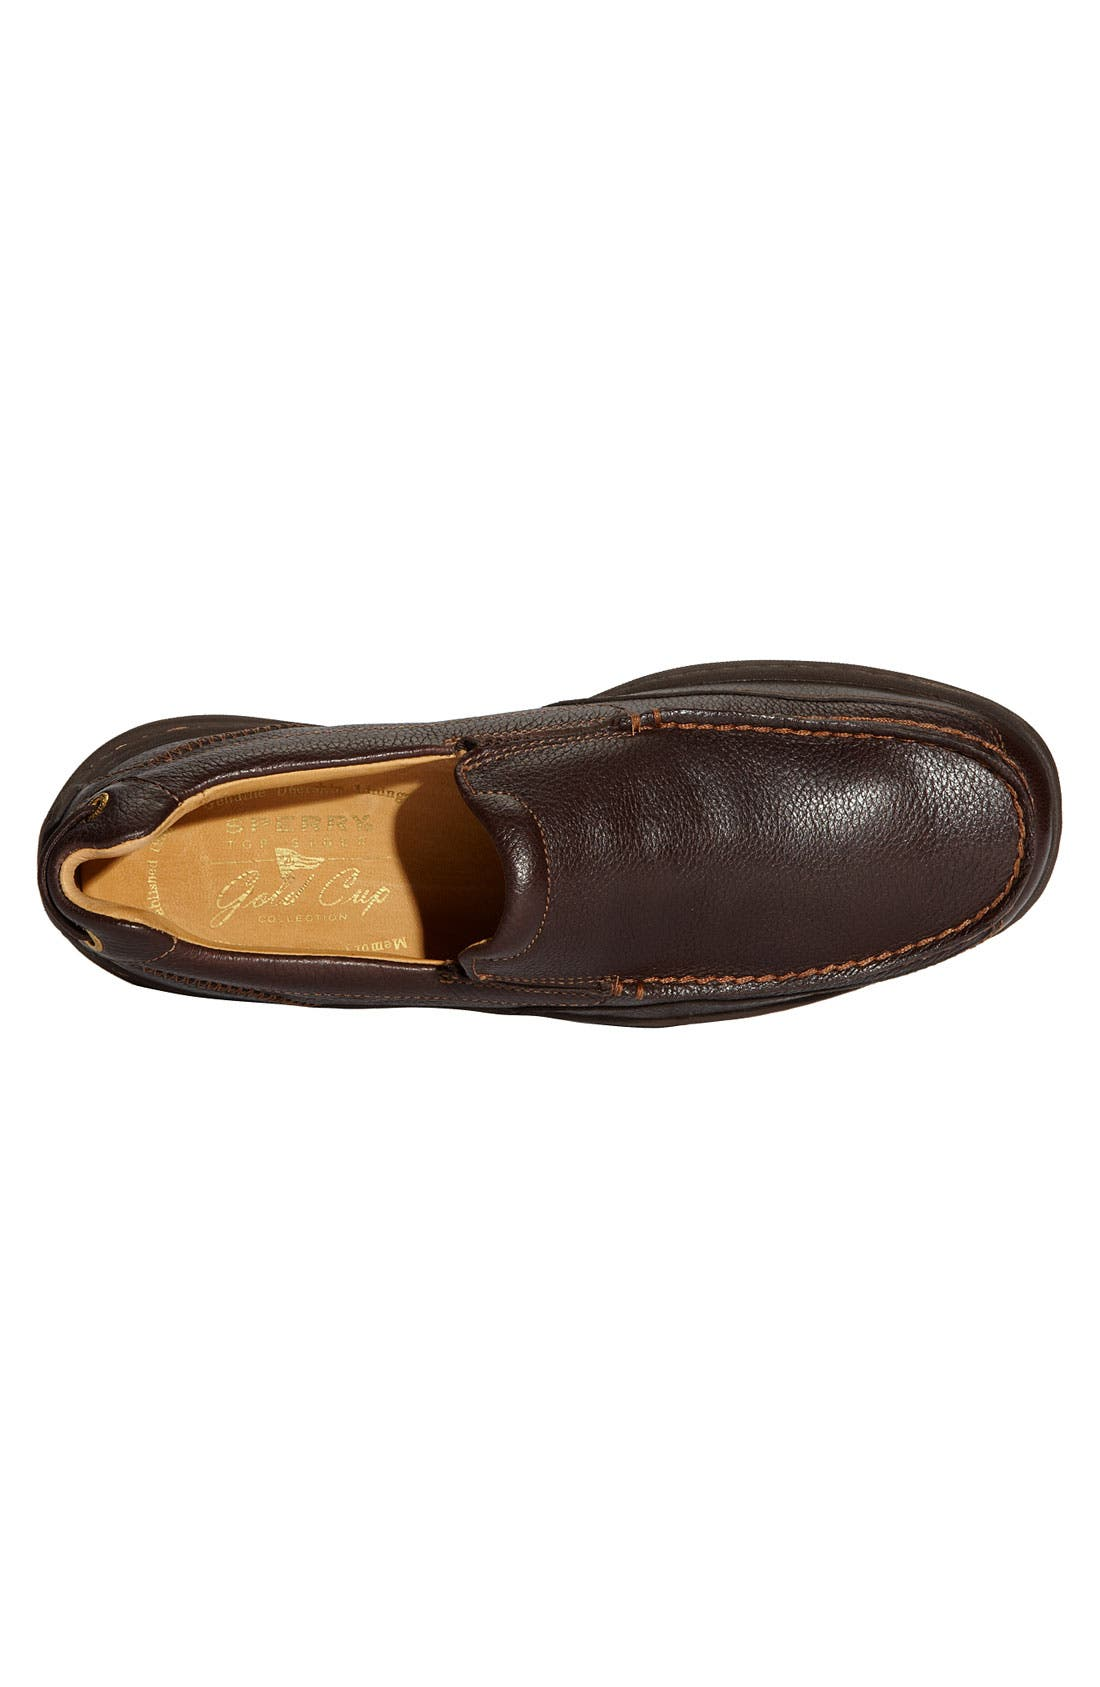 Alternate Image 3  - Sperry Top-Sider® 'Gold Lux' Leather Loafer